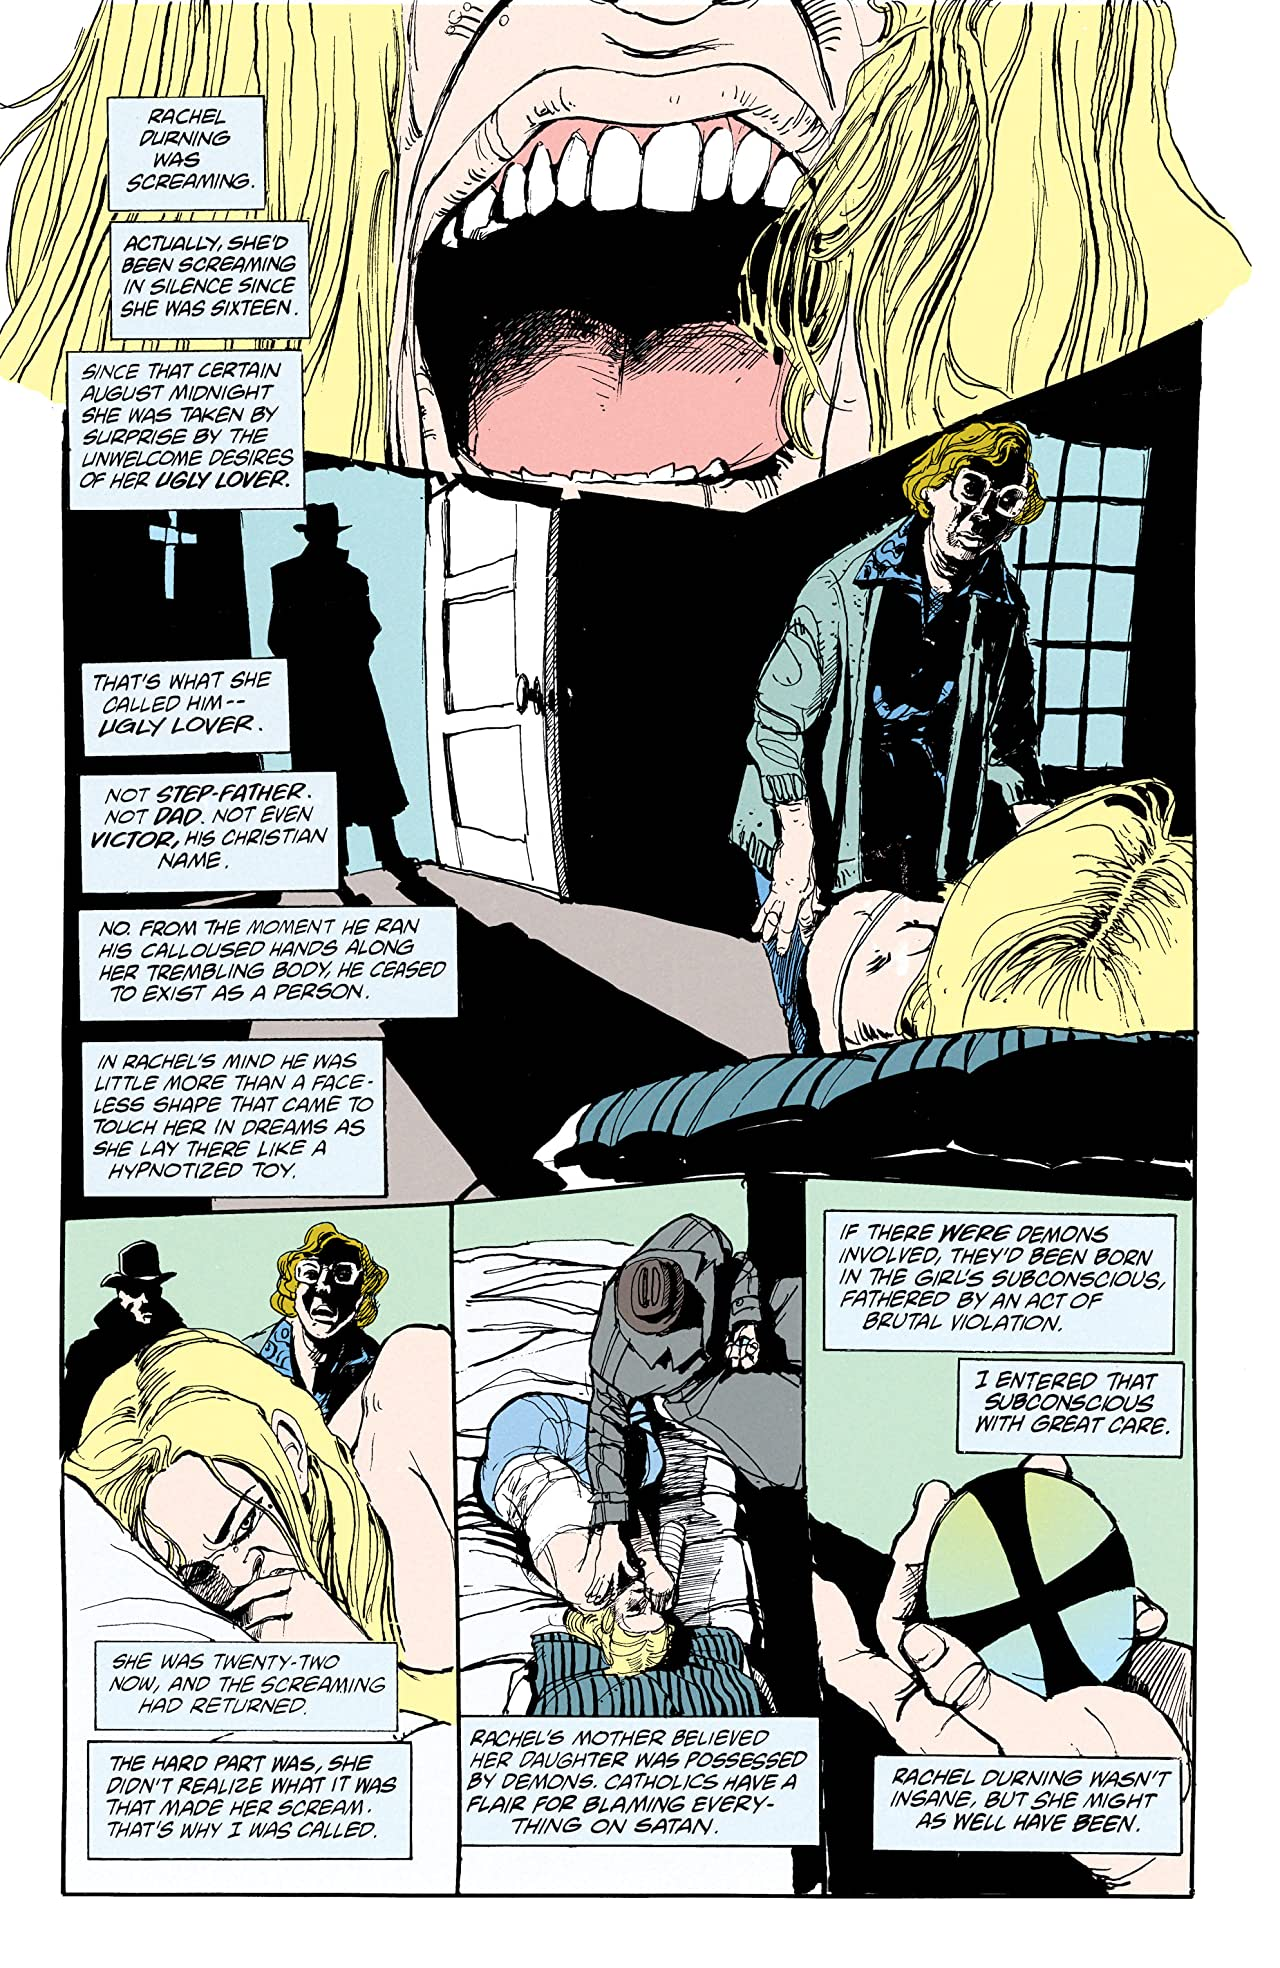 Vertigo Visions - Doctor Occult (1994) #1